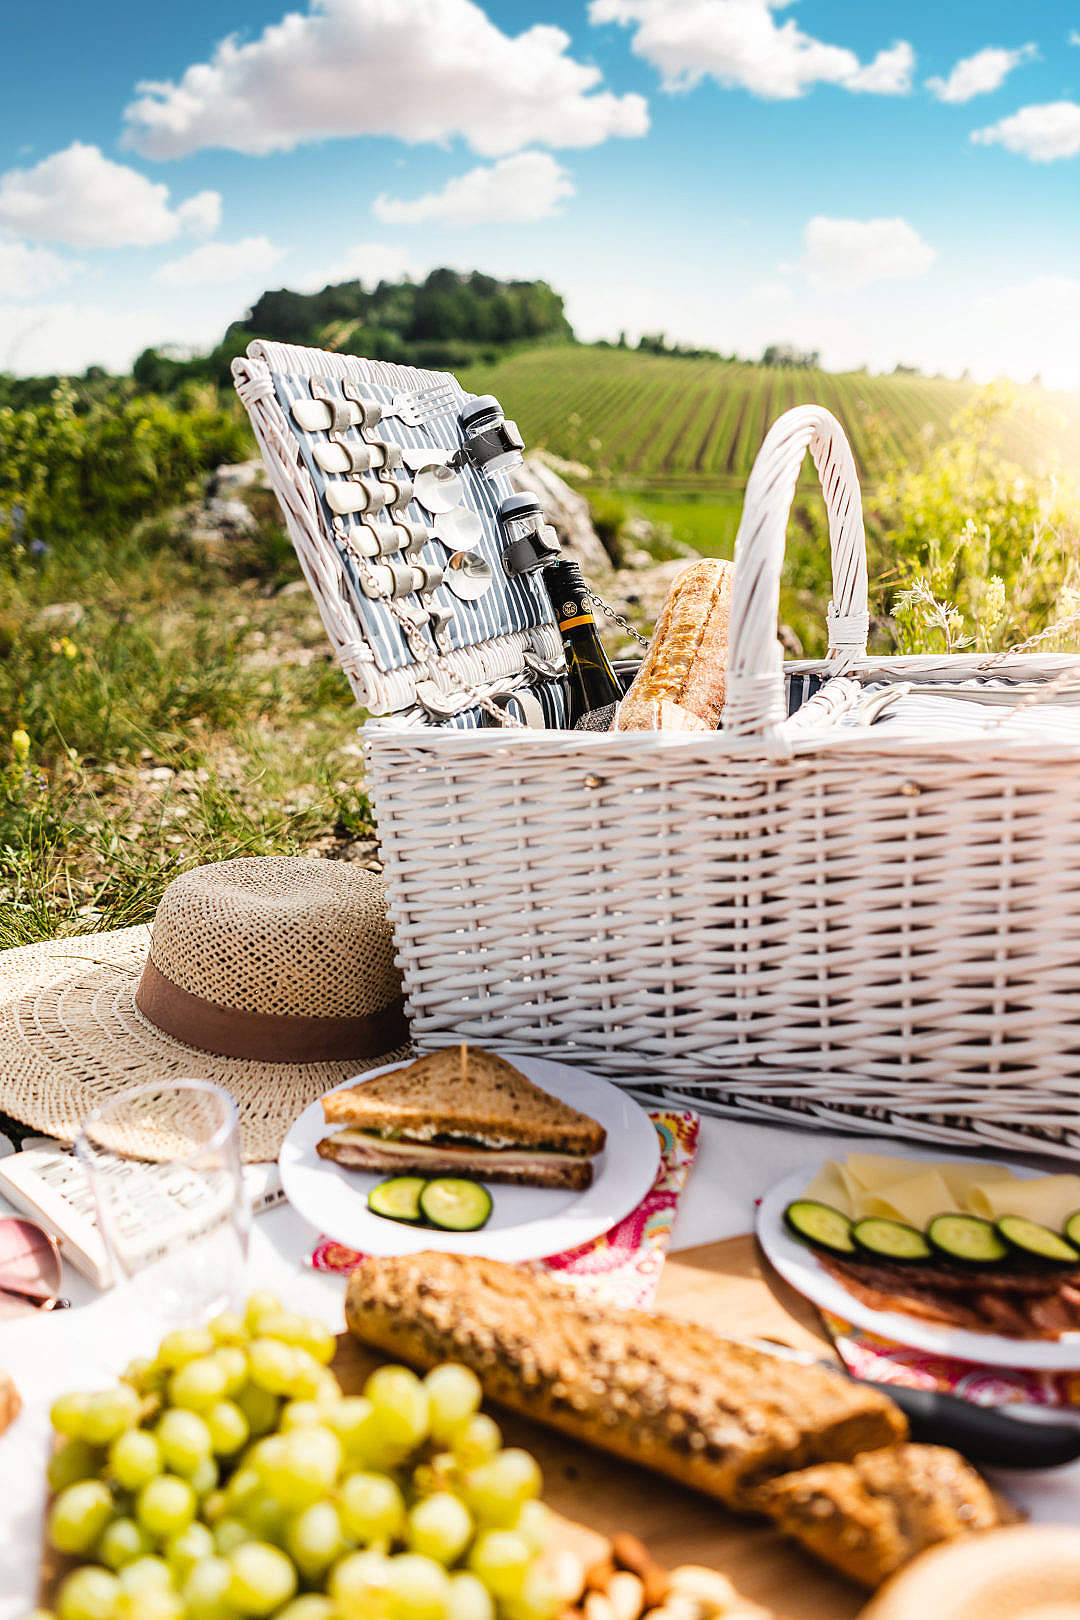 Download Picnic Basket FREE Stock Photo